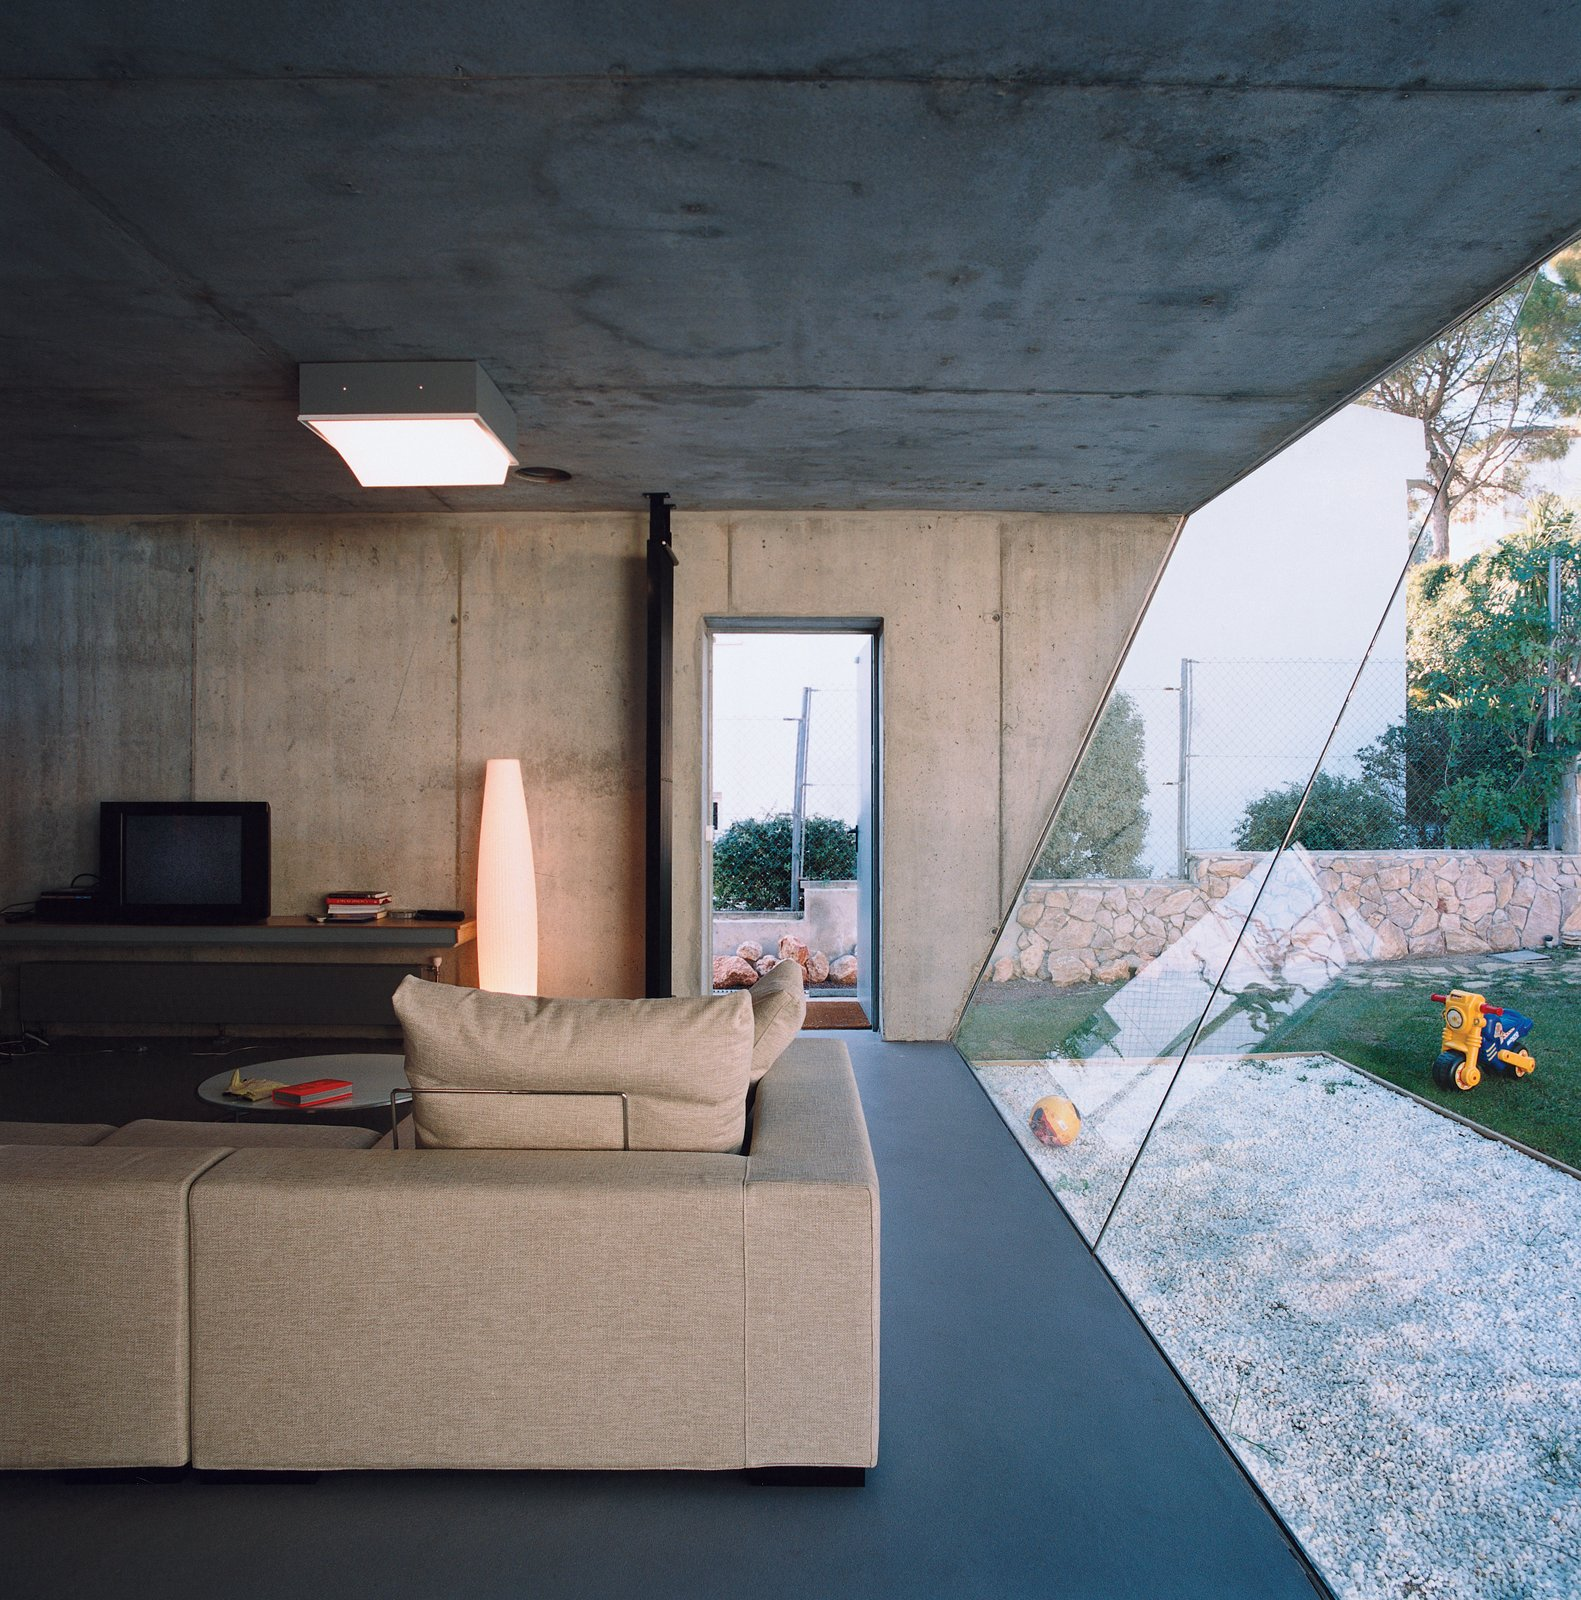 Living Room, Sofa, Ceiling Lighting, and Concrete Floor On the living room ceiling a Sivra fixture by iGuzzini modulates its output based on the amount of available daylight. The sofa is Wall by Piero Lissoni for Living Divani.  Photos from Suburban House of the Future by Cloud9